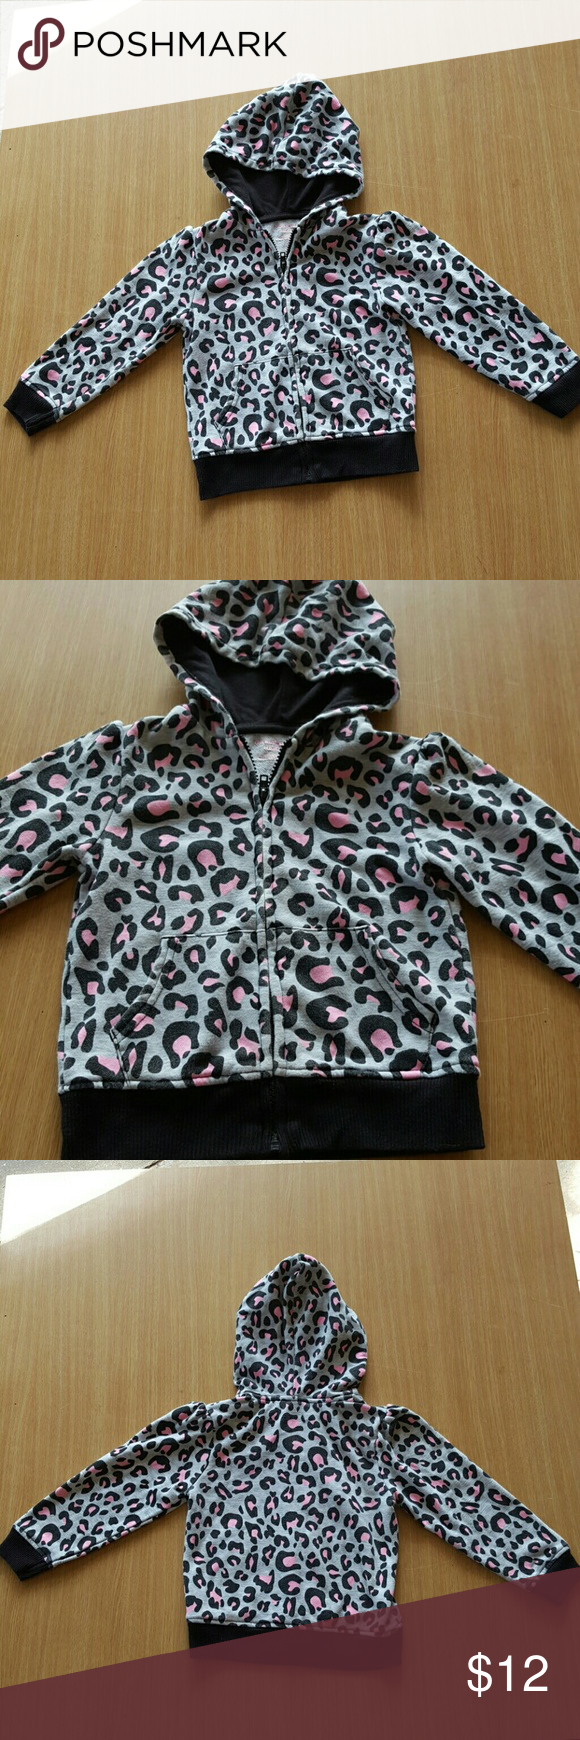 Granimals jacket Light autumn jacket. Pink and black leopards spots. Zips up front. Has pockets in front on waist. Lil puckered sleeve tops. Gently used. Granimals  Jackets & Coats